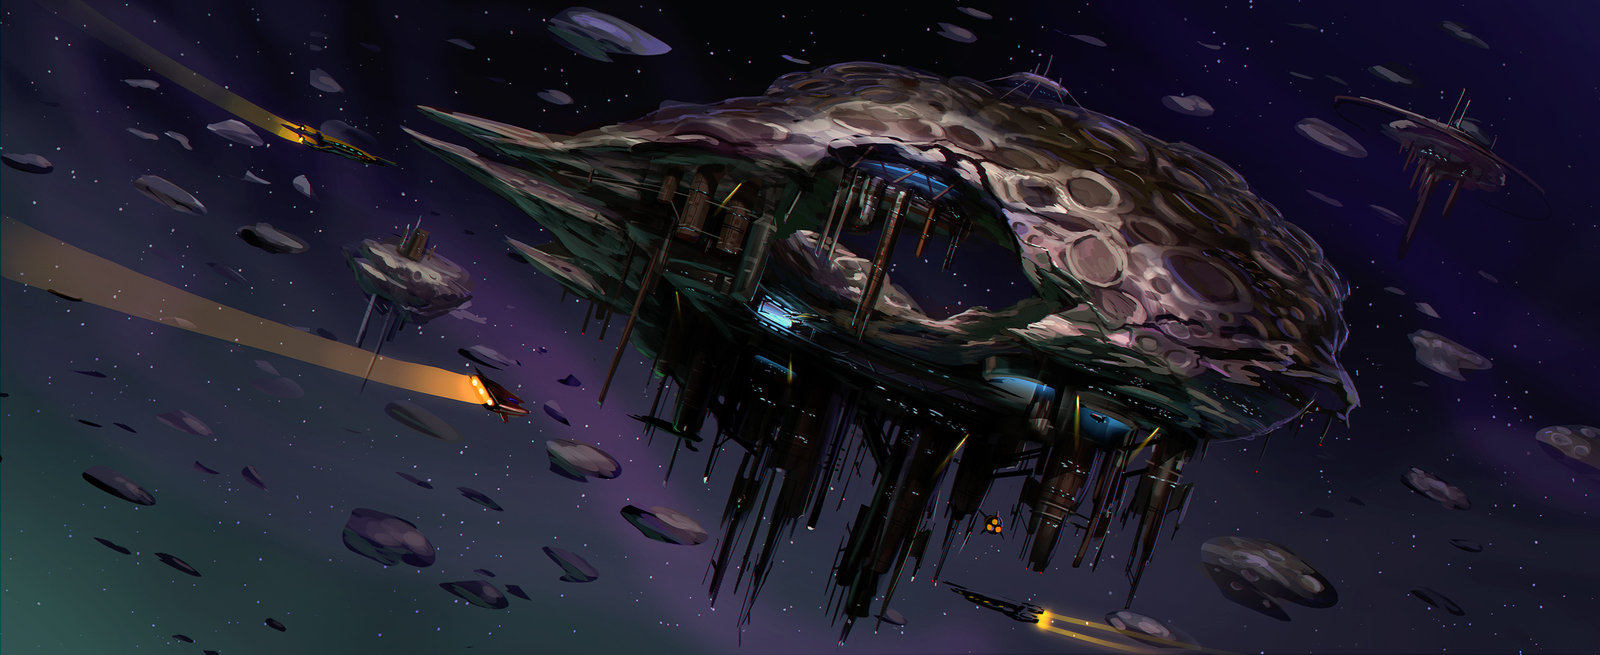 space_pirate_asteroid_base_by_meckanicalmind-d5y5p5o.jpg